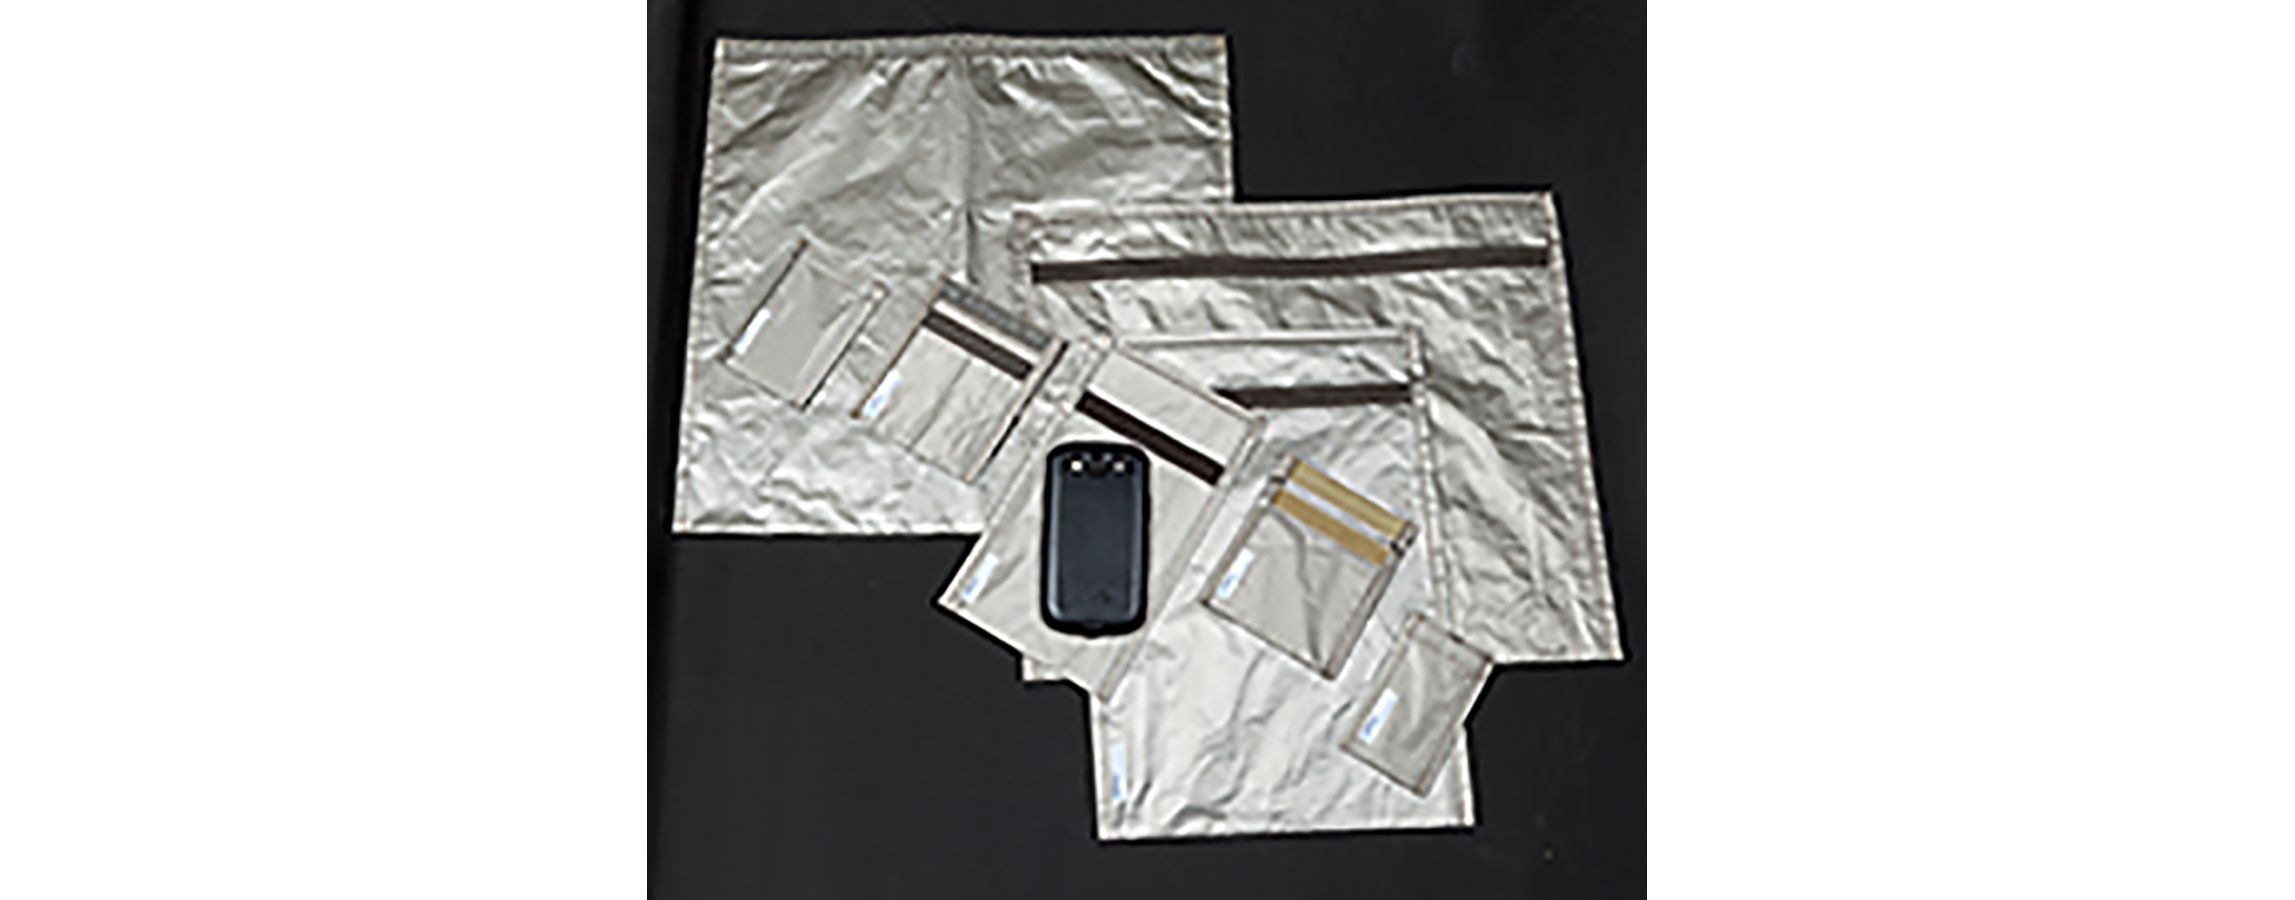 RF / EMI shielding pouches from Select Fabricators, Inc.